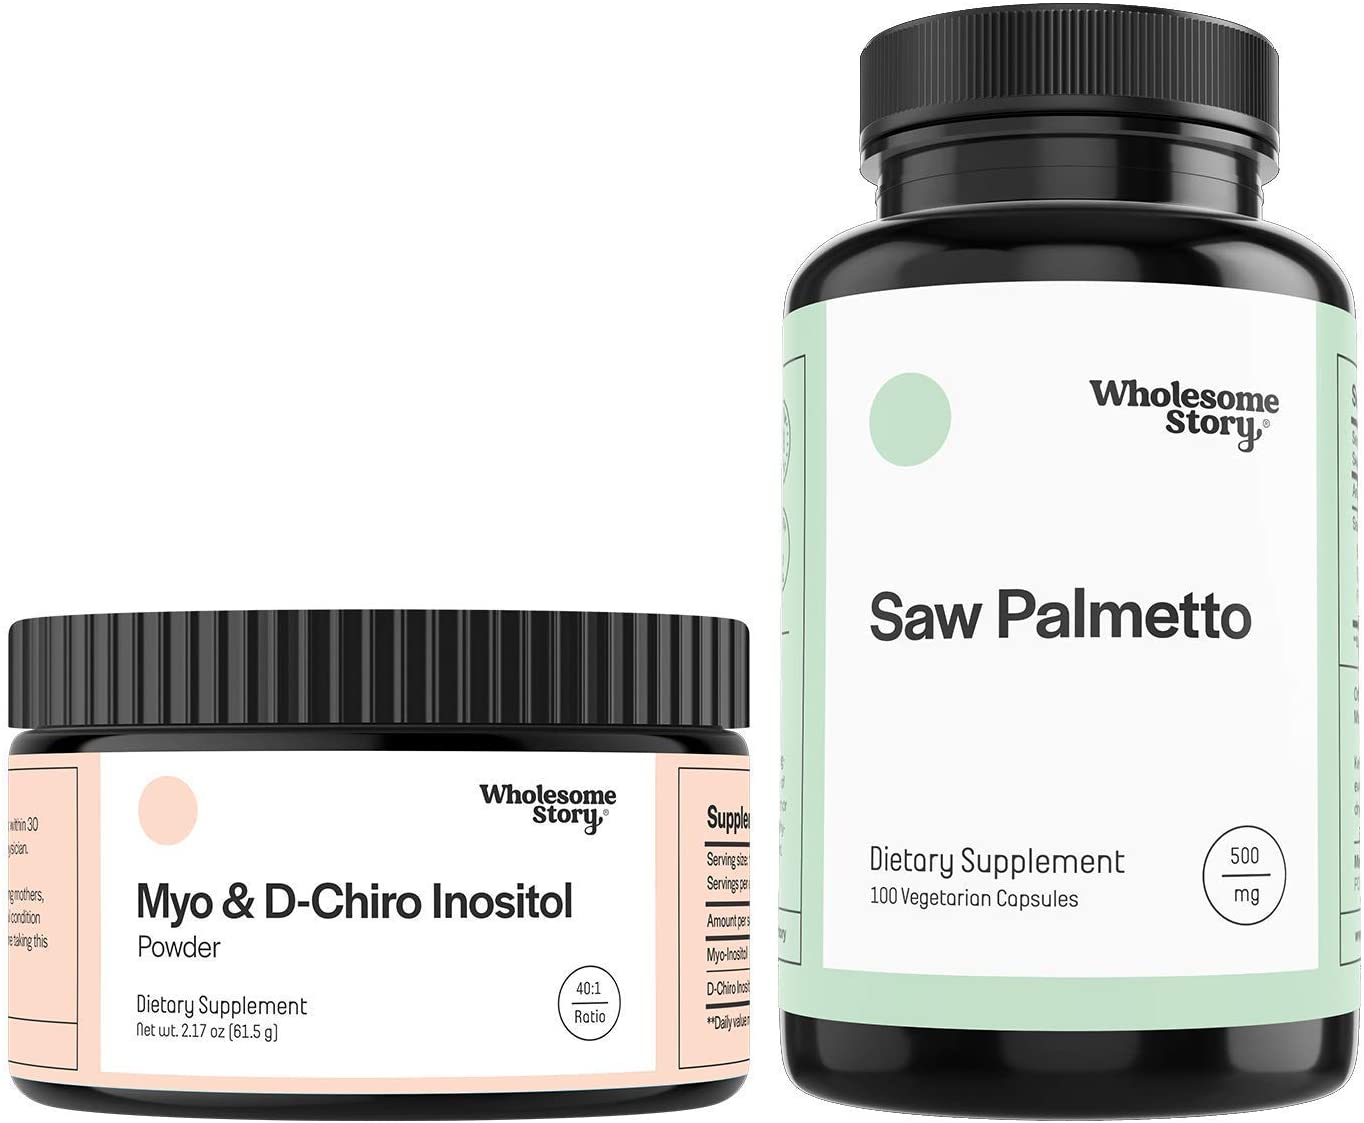 Myo & D-Chiro Inositol Powder + Saw Palmetto | Hormone Balance, Healthy Ovarian Function, Fertility and Hair Support | Vegan Friendly